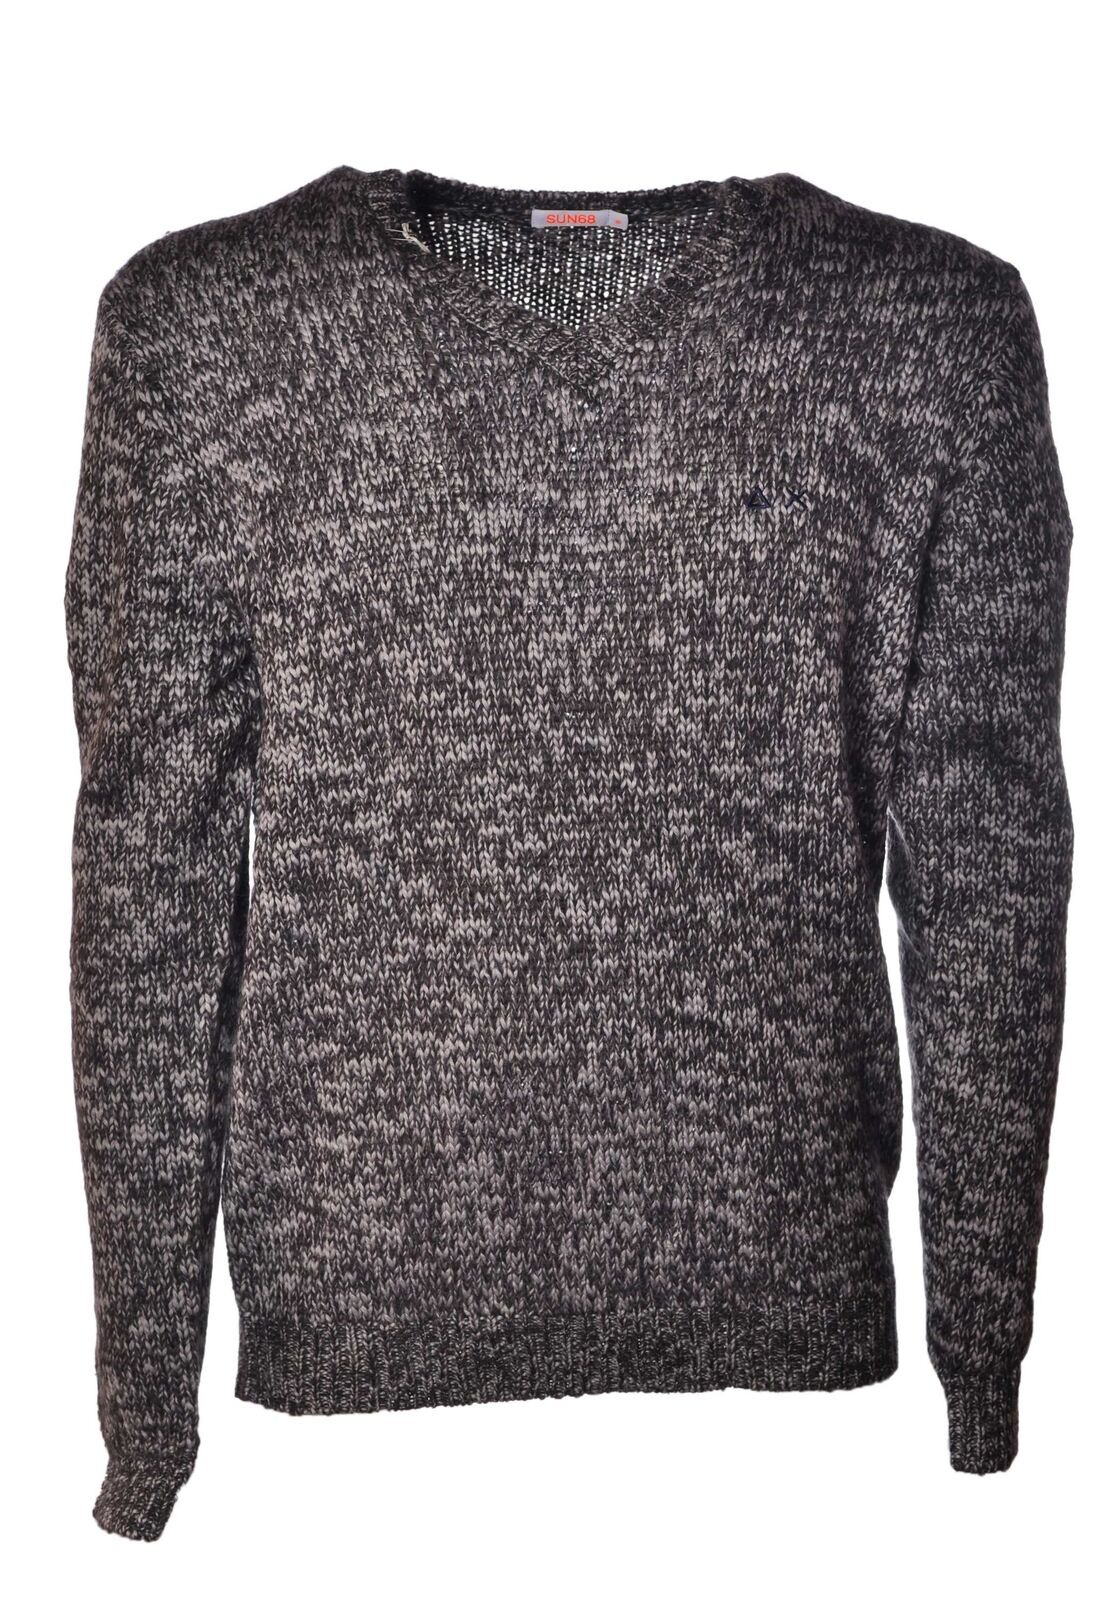 Sun 68 - Knitwear-Sweaters - Man - Grey - 4048018B183502